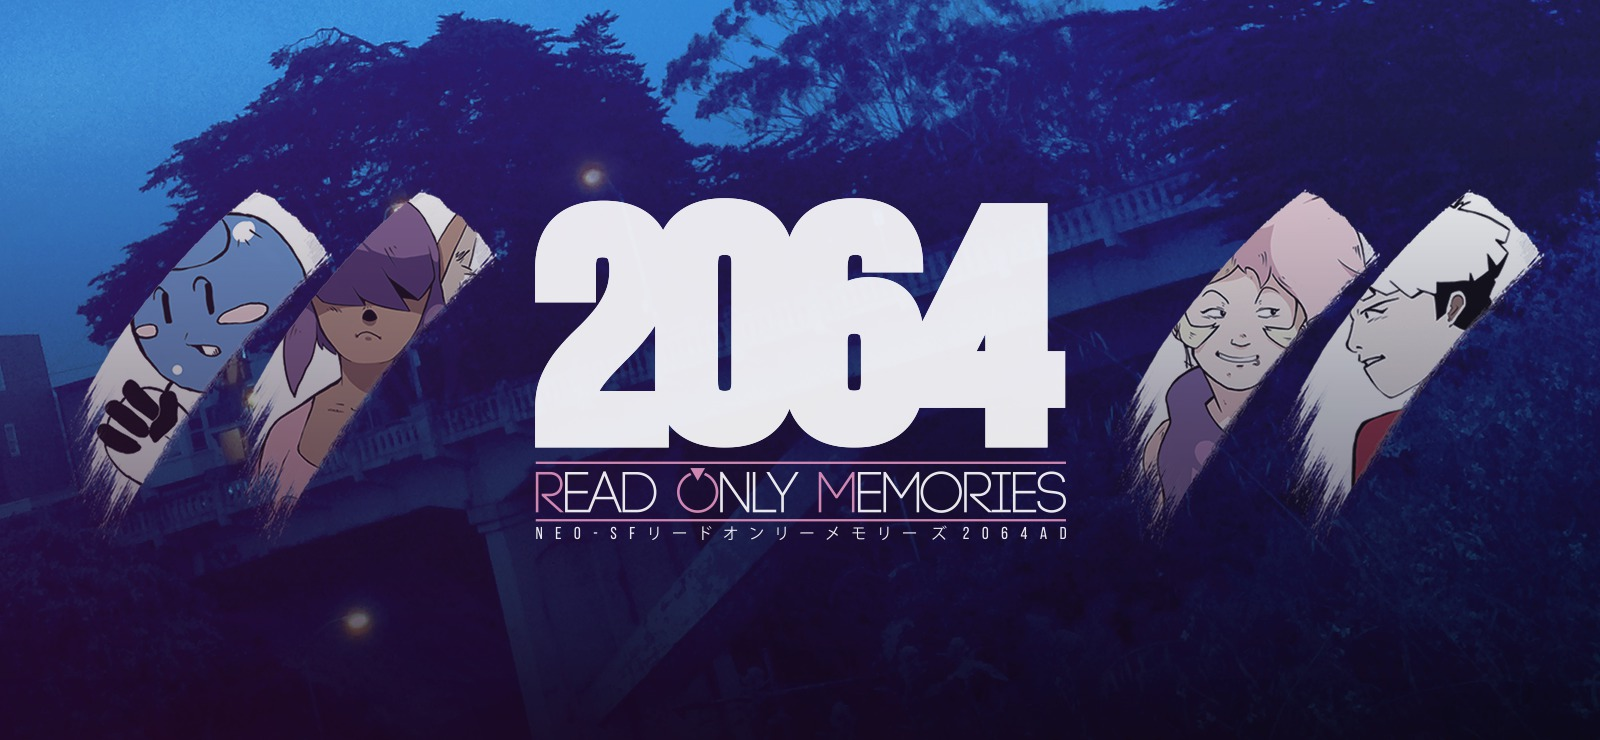 Making the cocktails in 2064: Read Only Memories screenshot